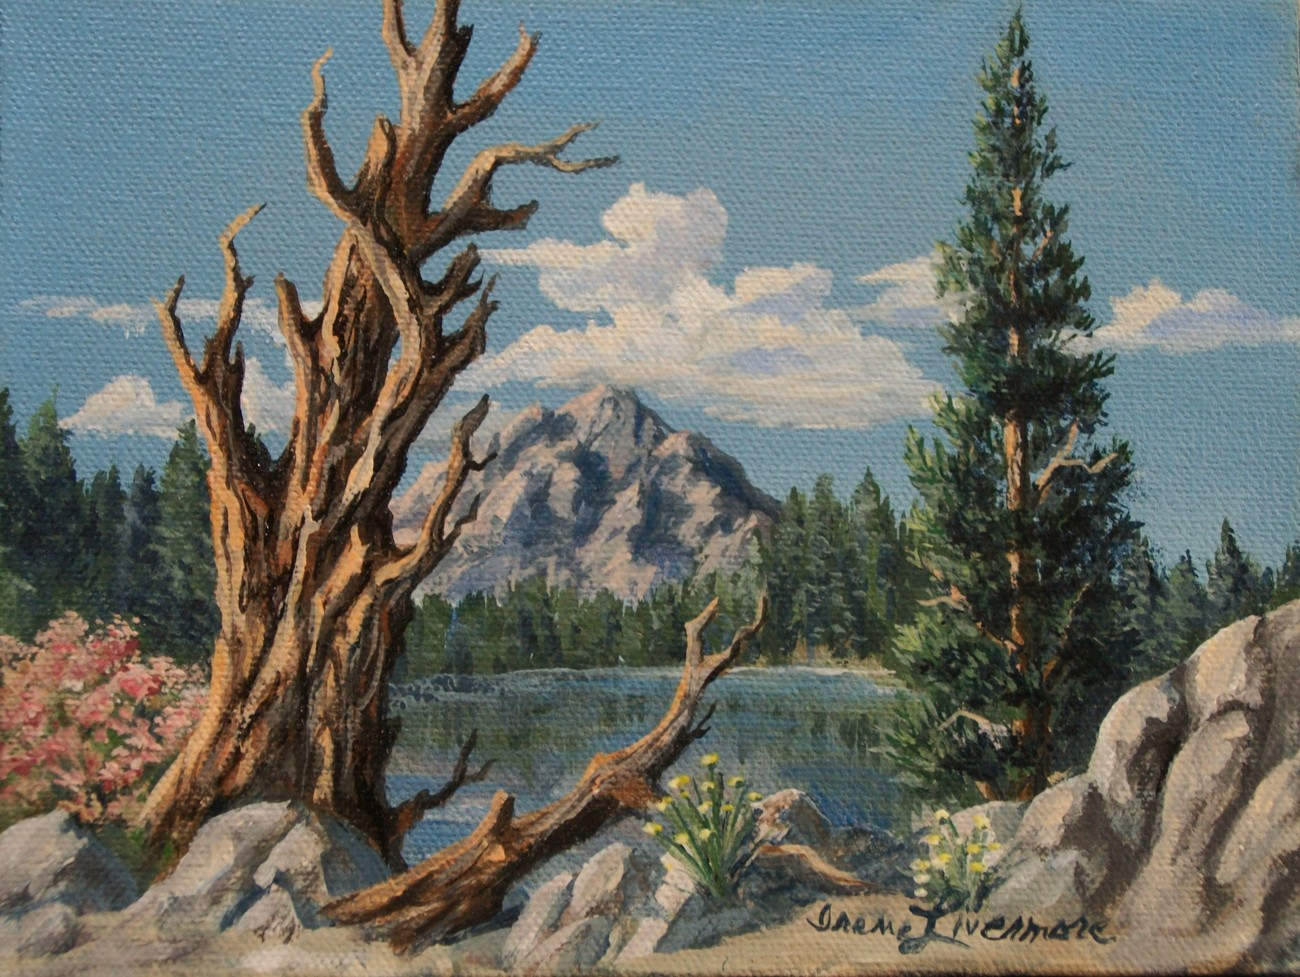 High Sierra Lake Standing Dead Tree Flowers Realistic Original Oil Painting